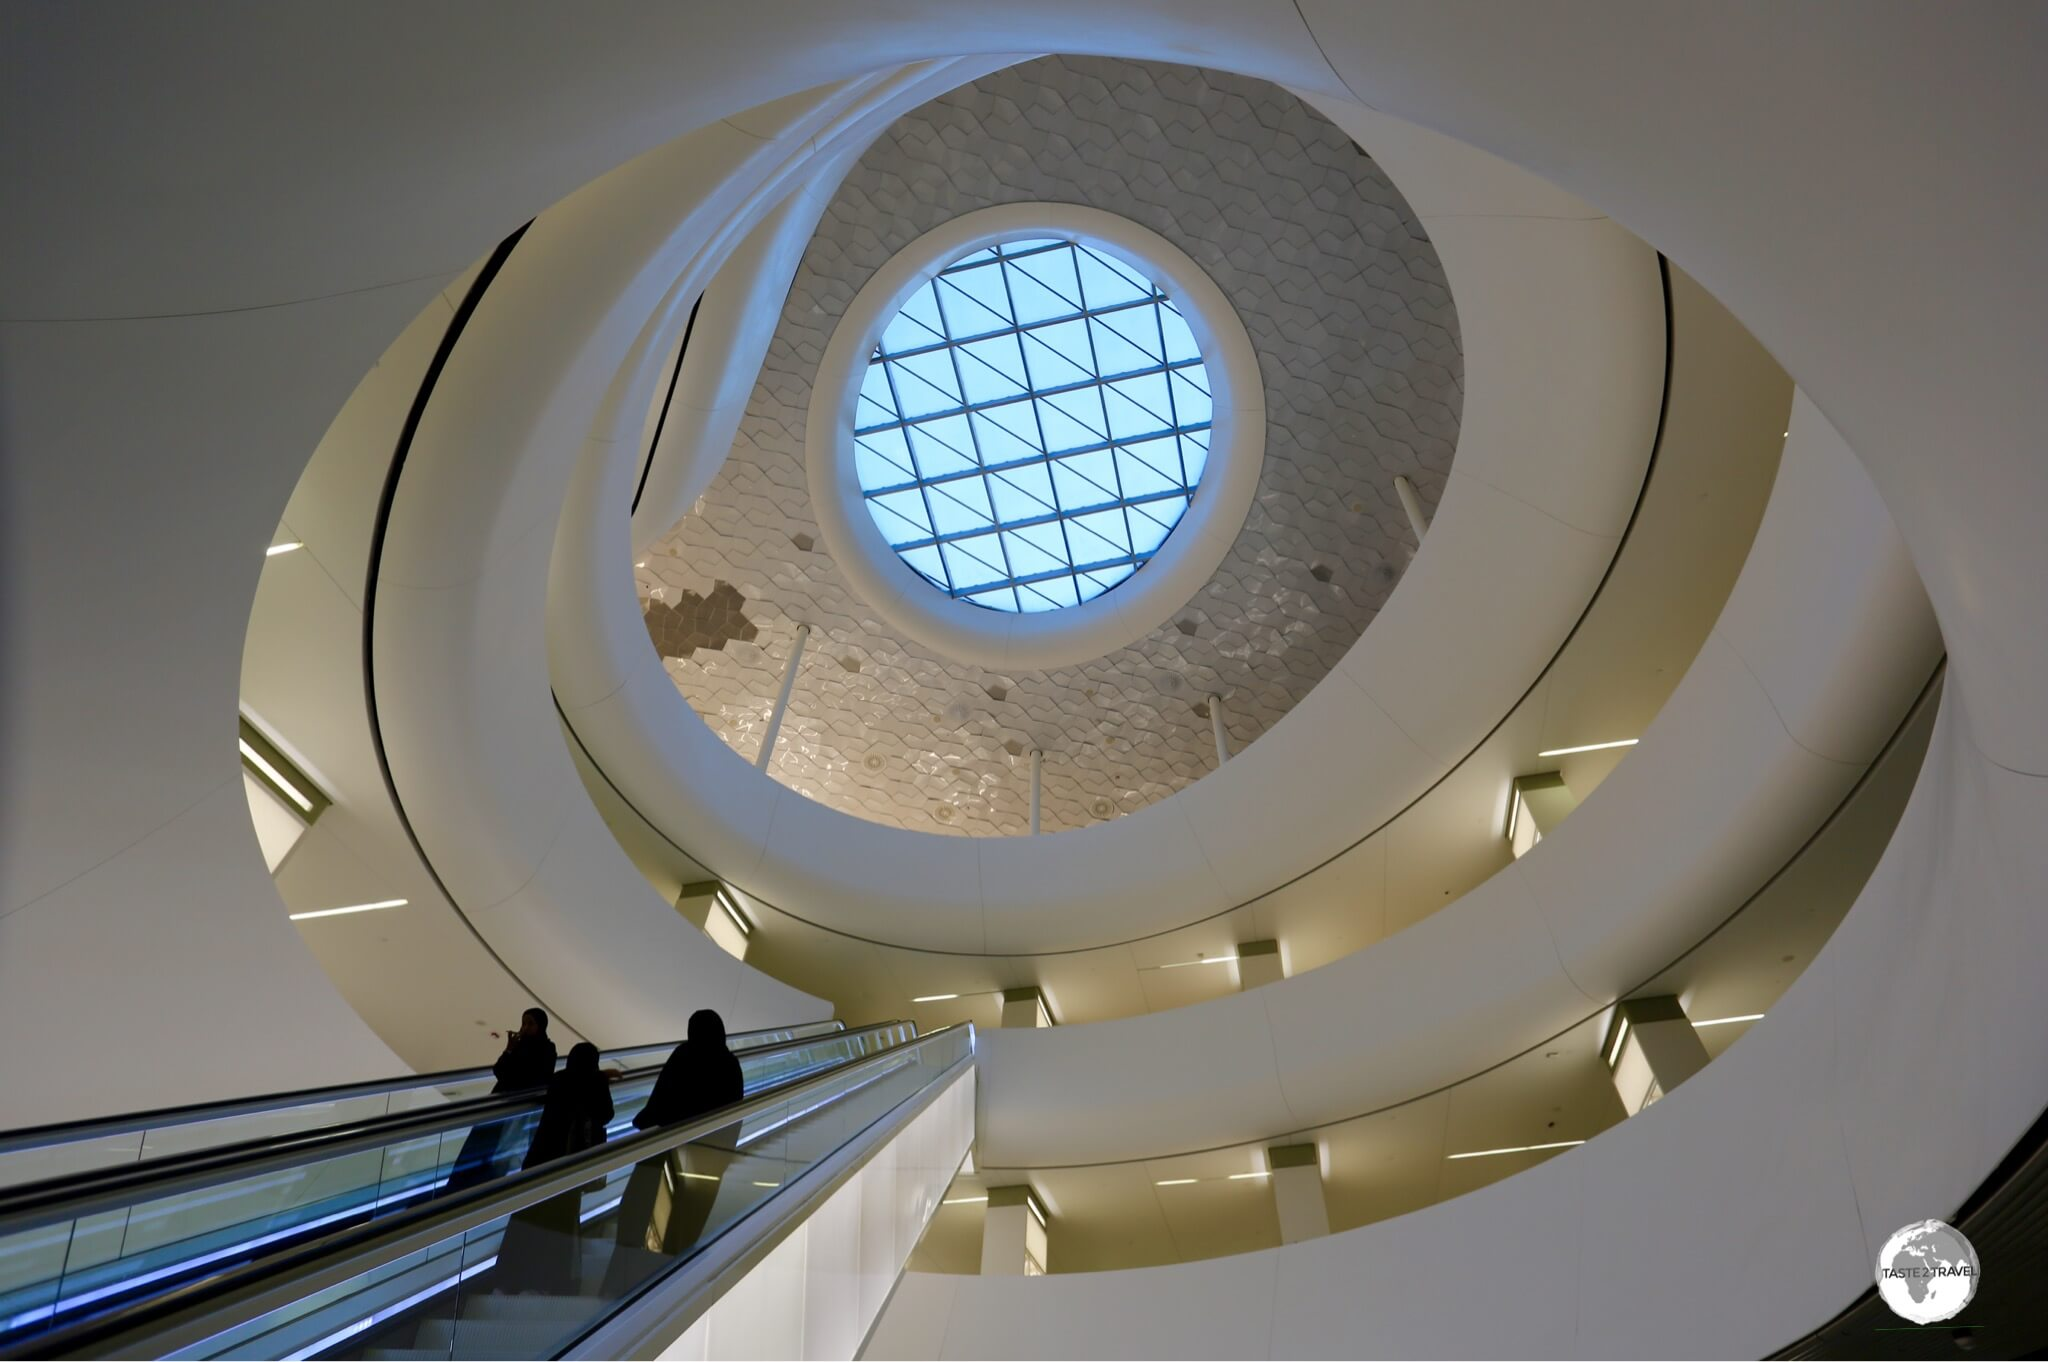 The interior of the King Abdulaziz Centre for World Culture in Dhahran.